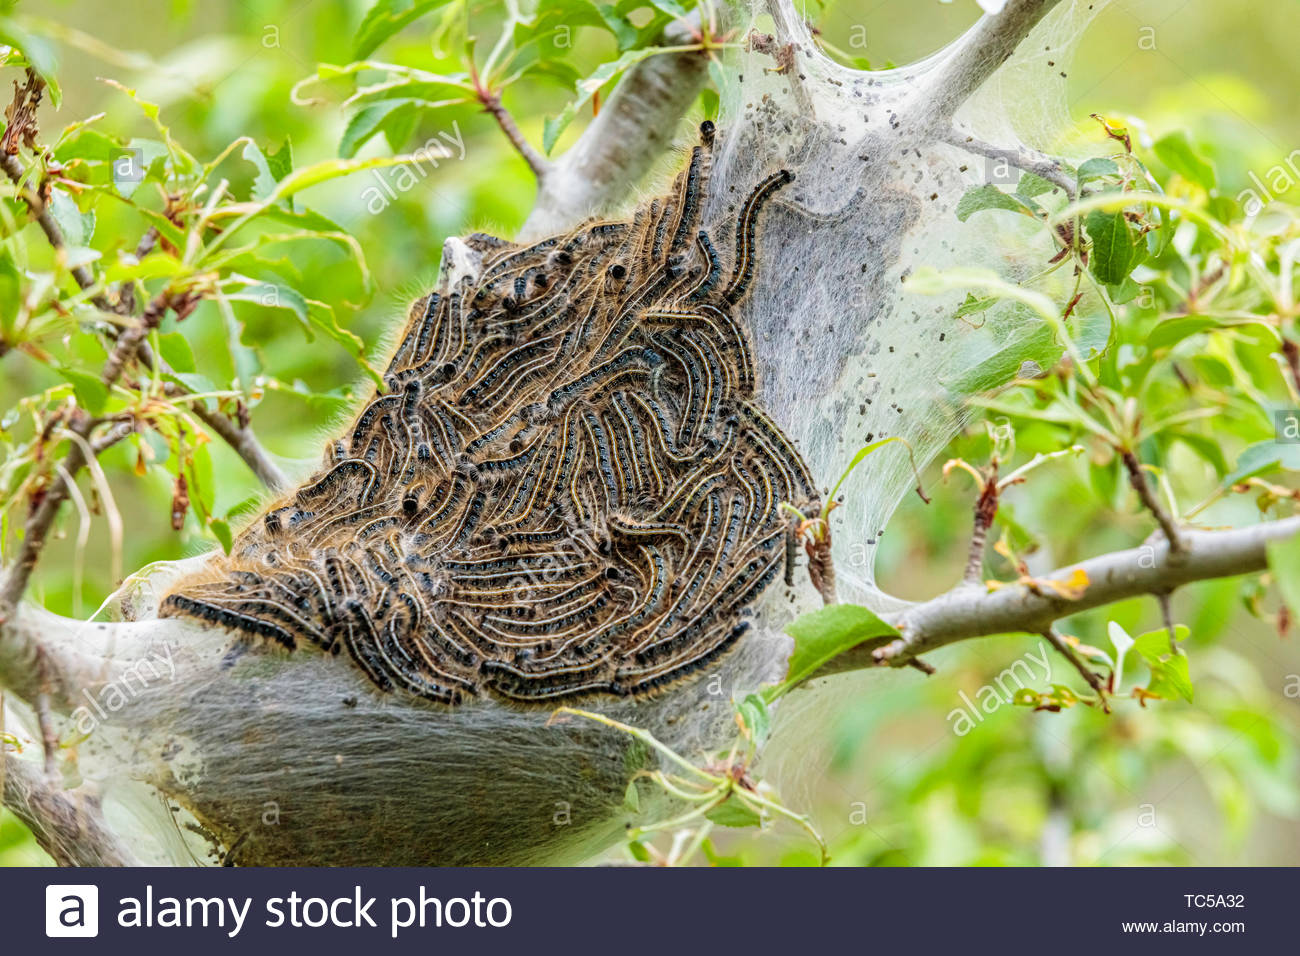 Malacosoma americanum Eastern Tent Caterpillar larval stage basking on communal tent on tree in Ontario Canada. - Stock Image